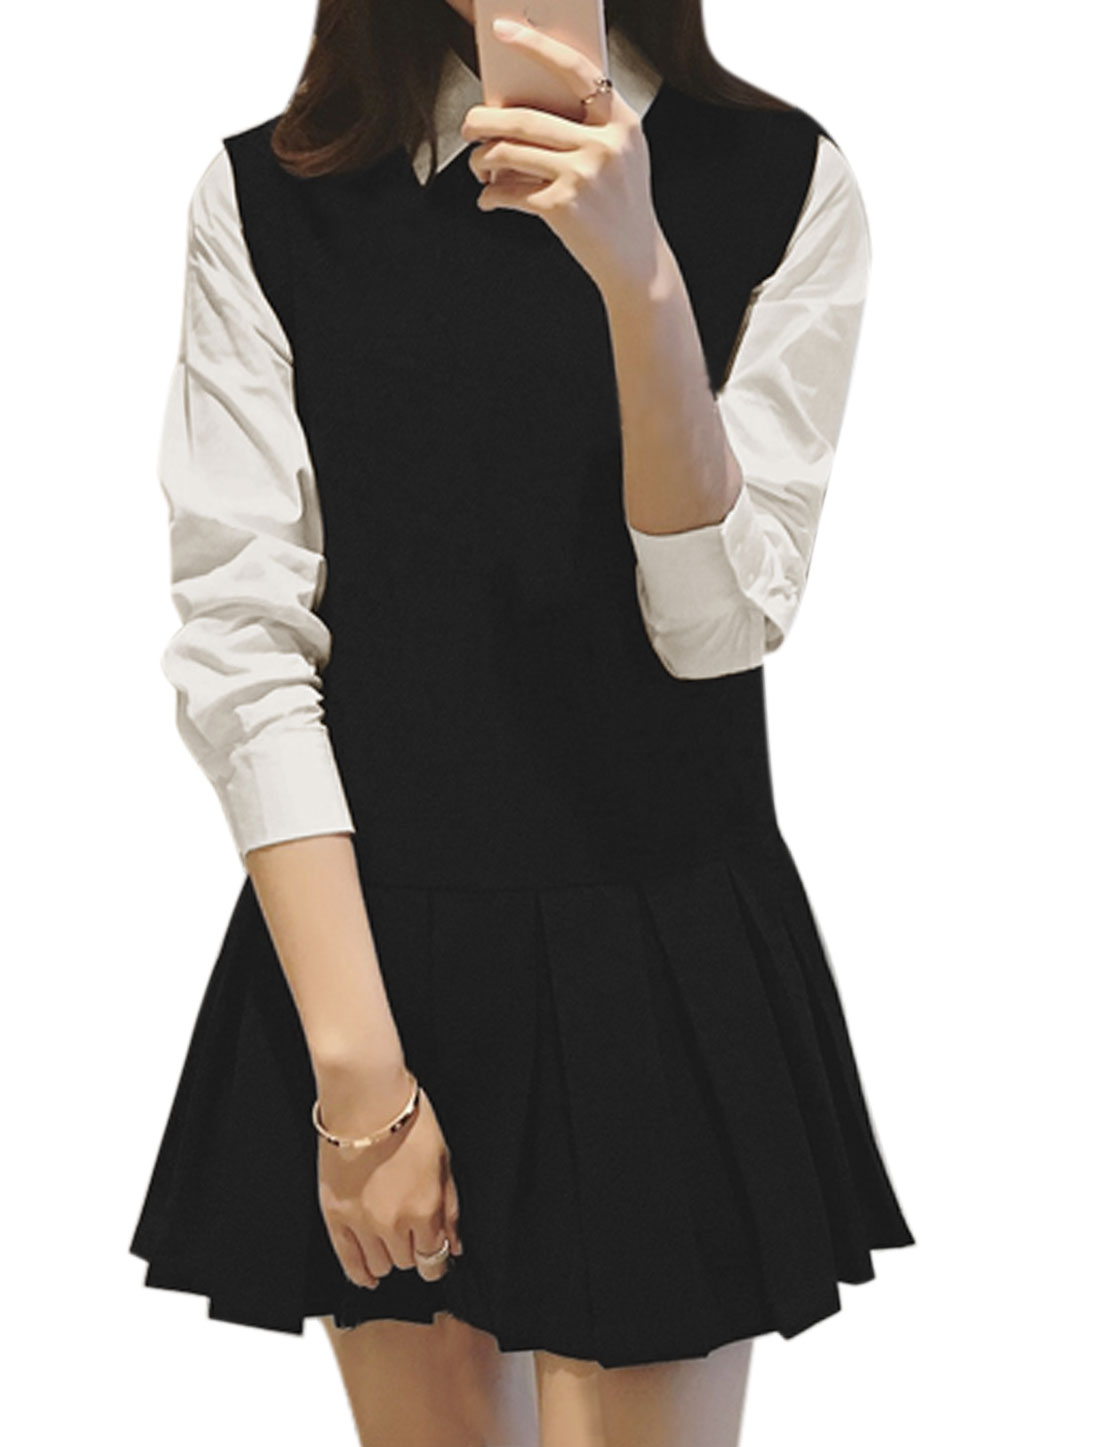 Women Point Collar Pleated Layered Worsted Shirt Dress Black S